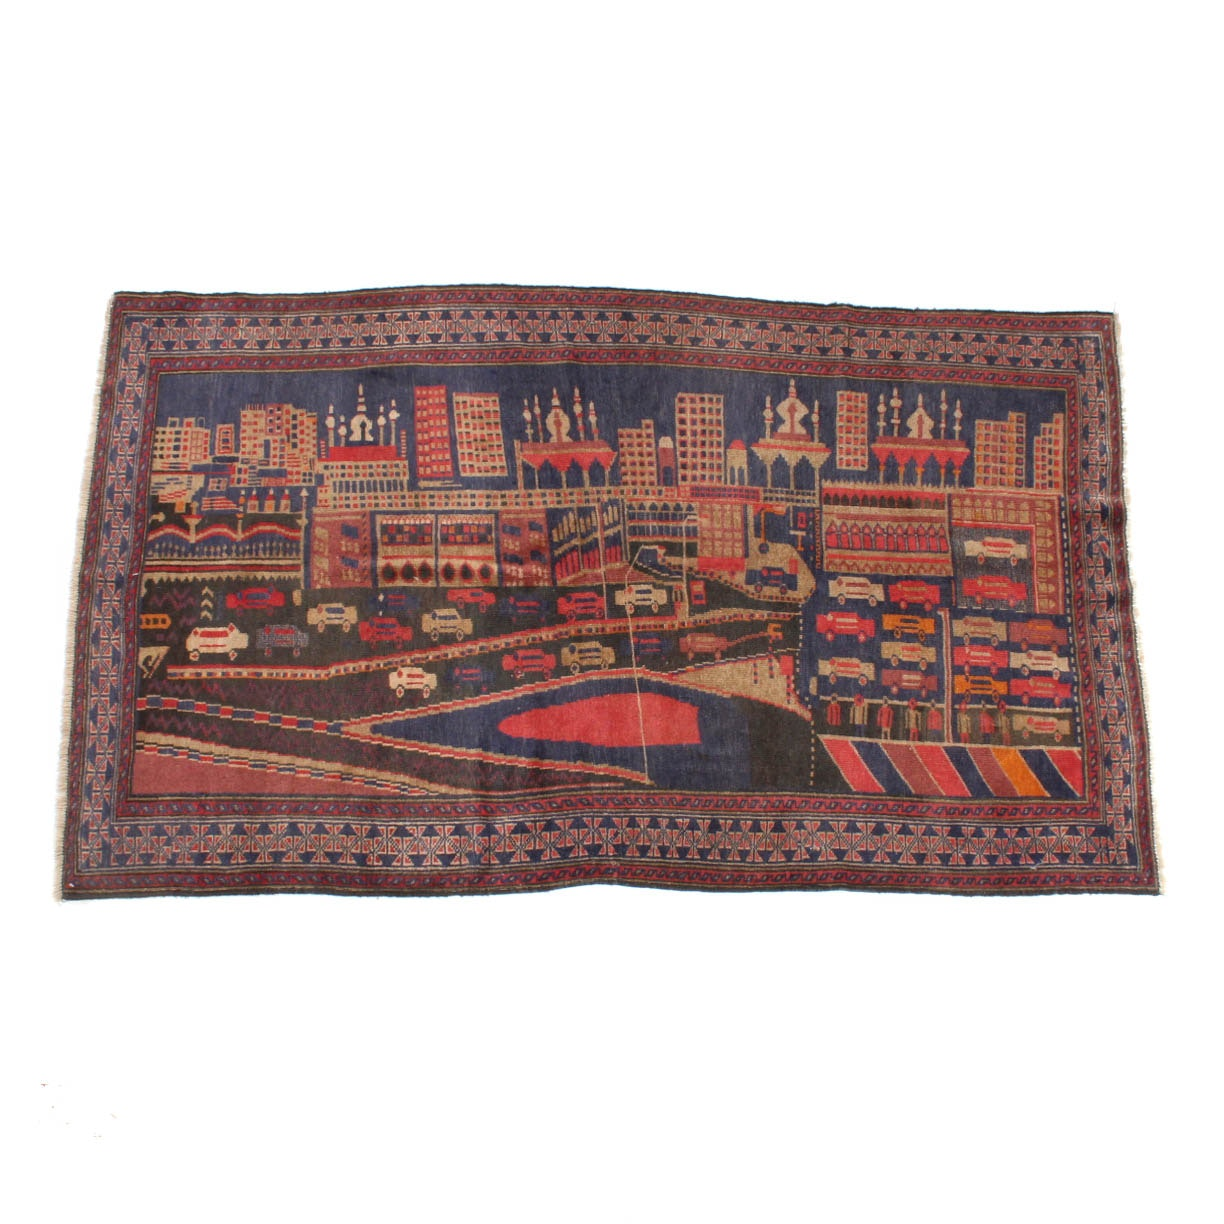 Hand-Knotted Afghani Baluch Pictorial Area Rug